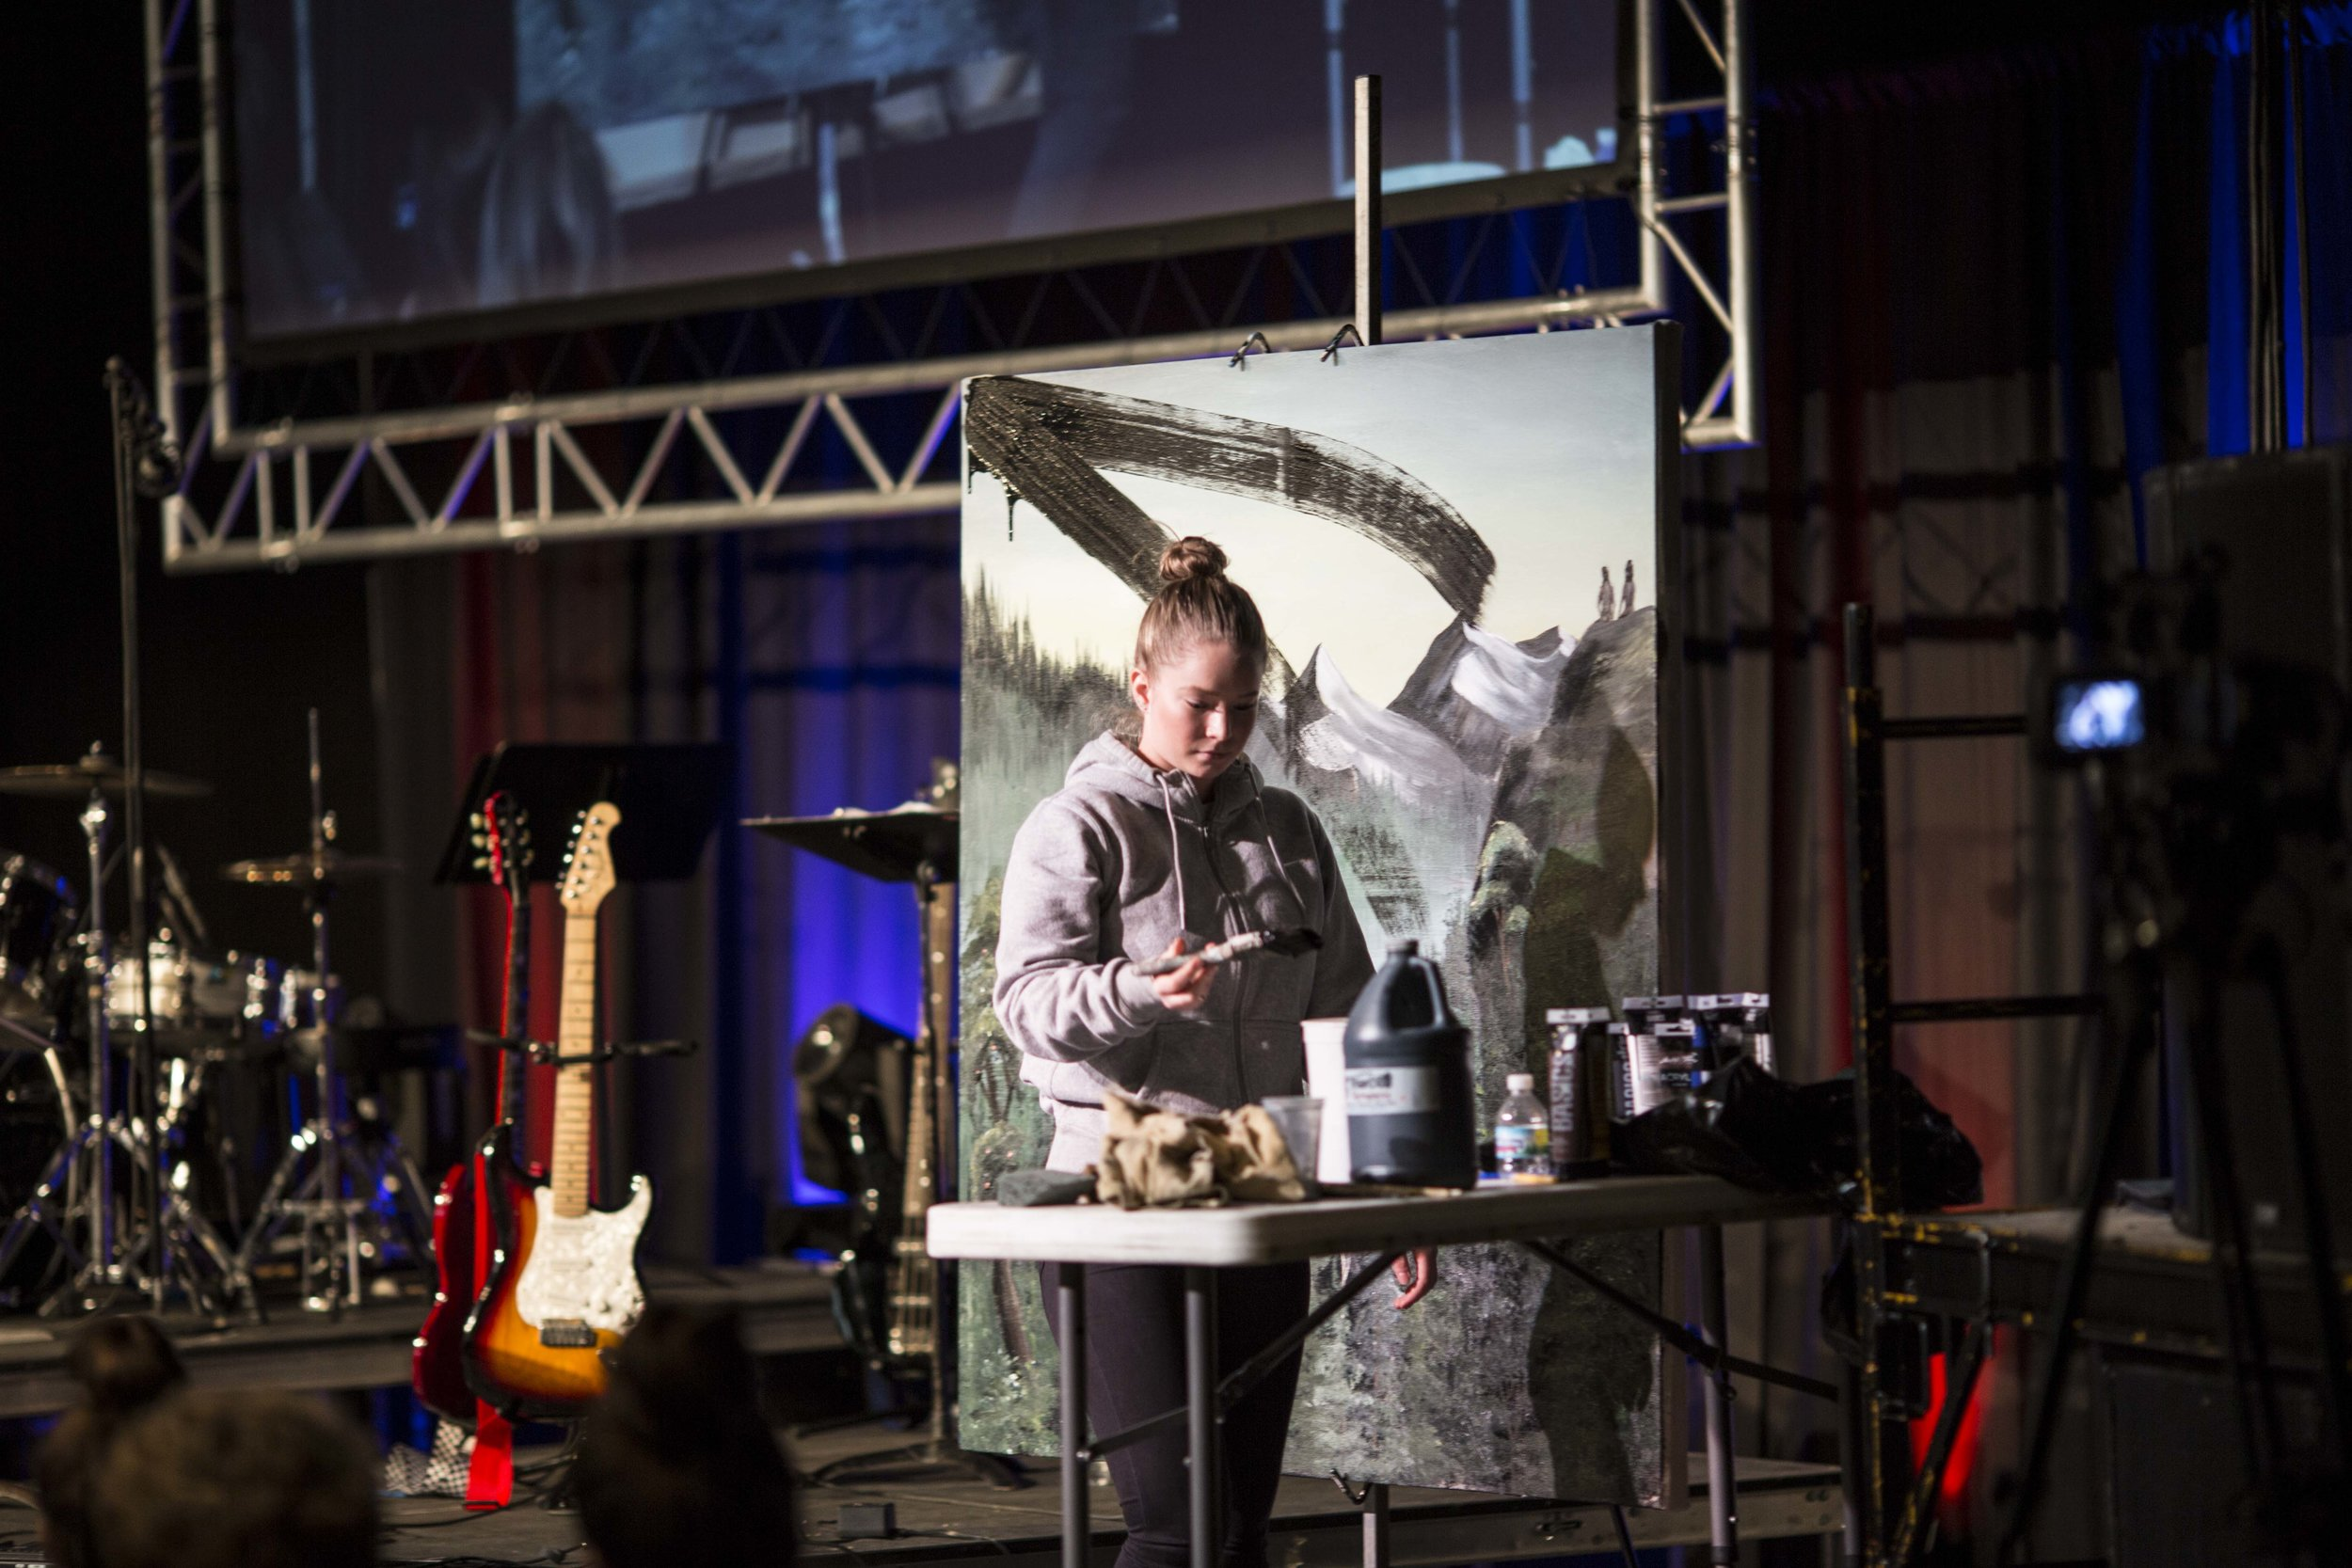 Leonora Tuvin paints over Sylvia's painting, an artistic depiction of the fall, during day two of Prayer Day